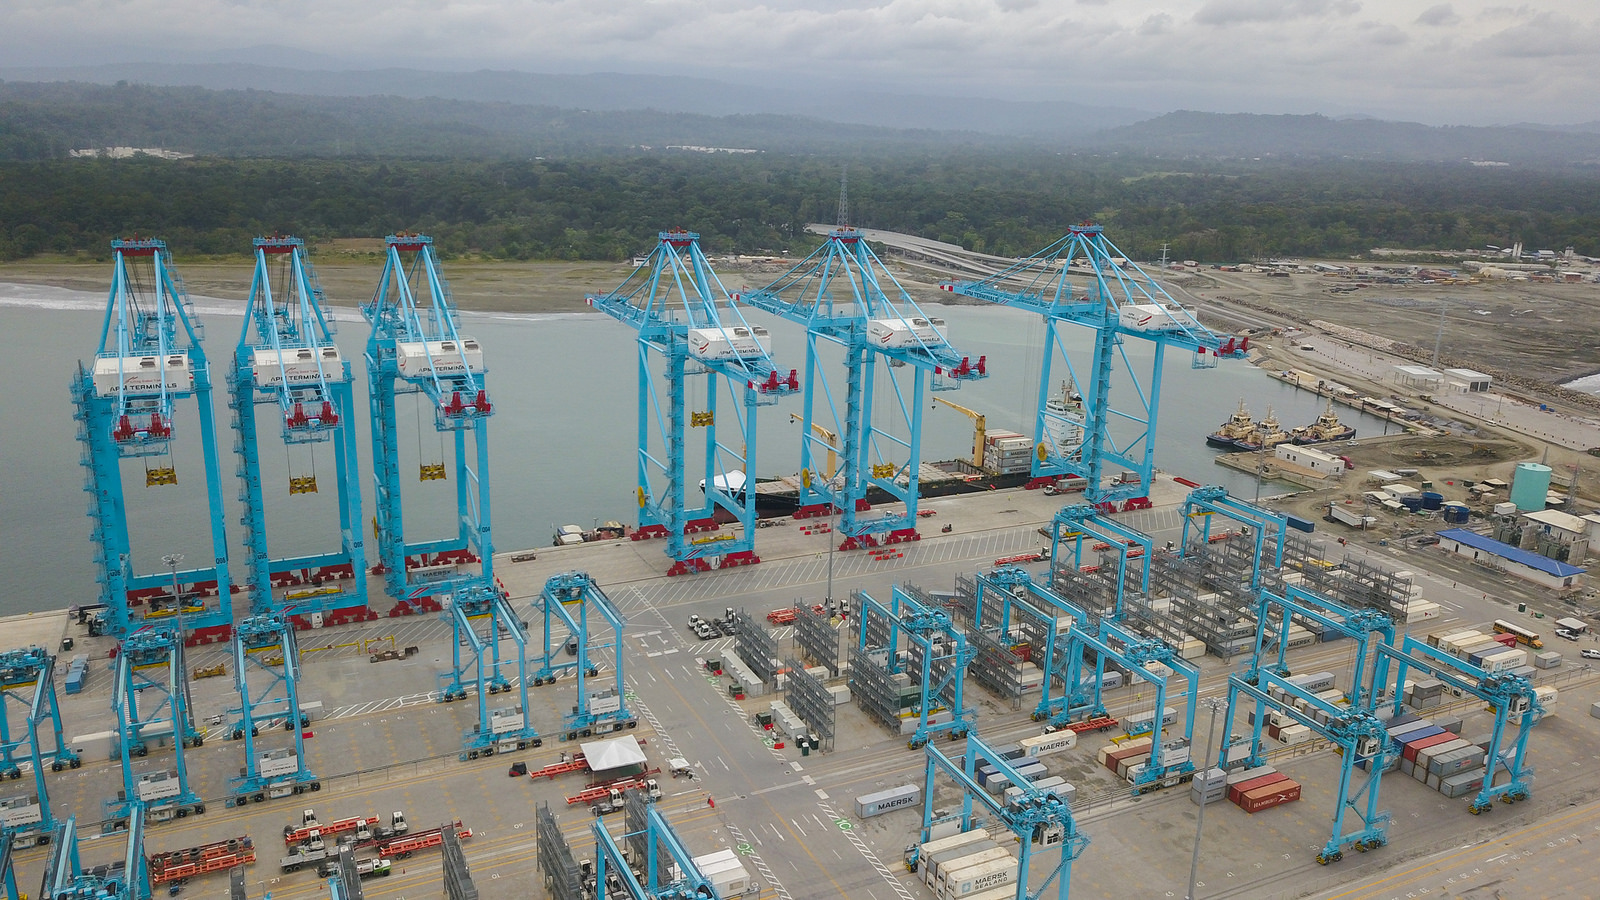 The new terminal will transform Costa Rica's cold chain.